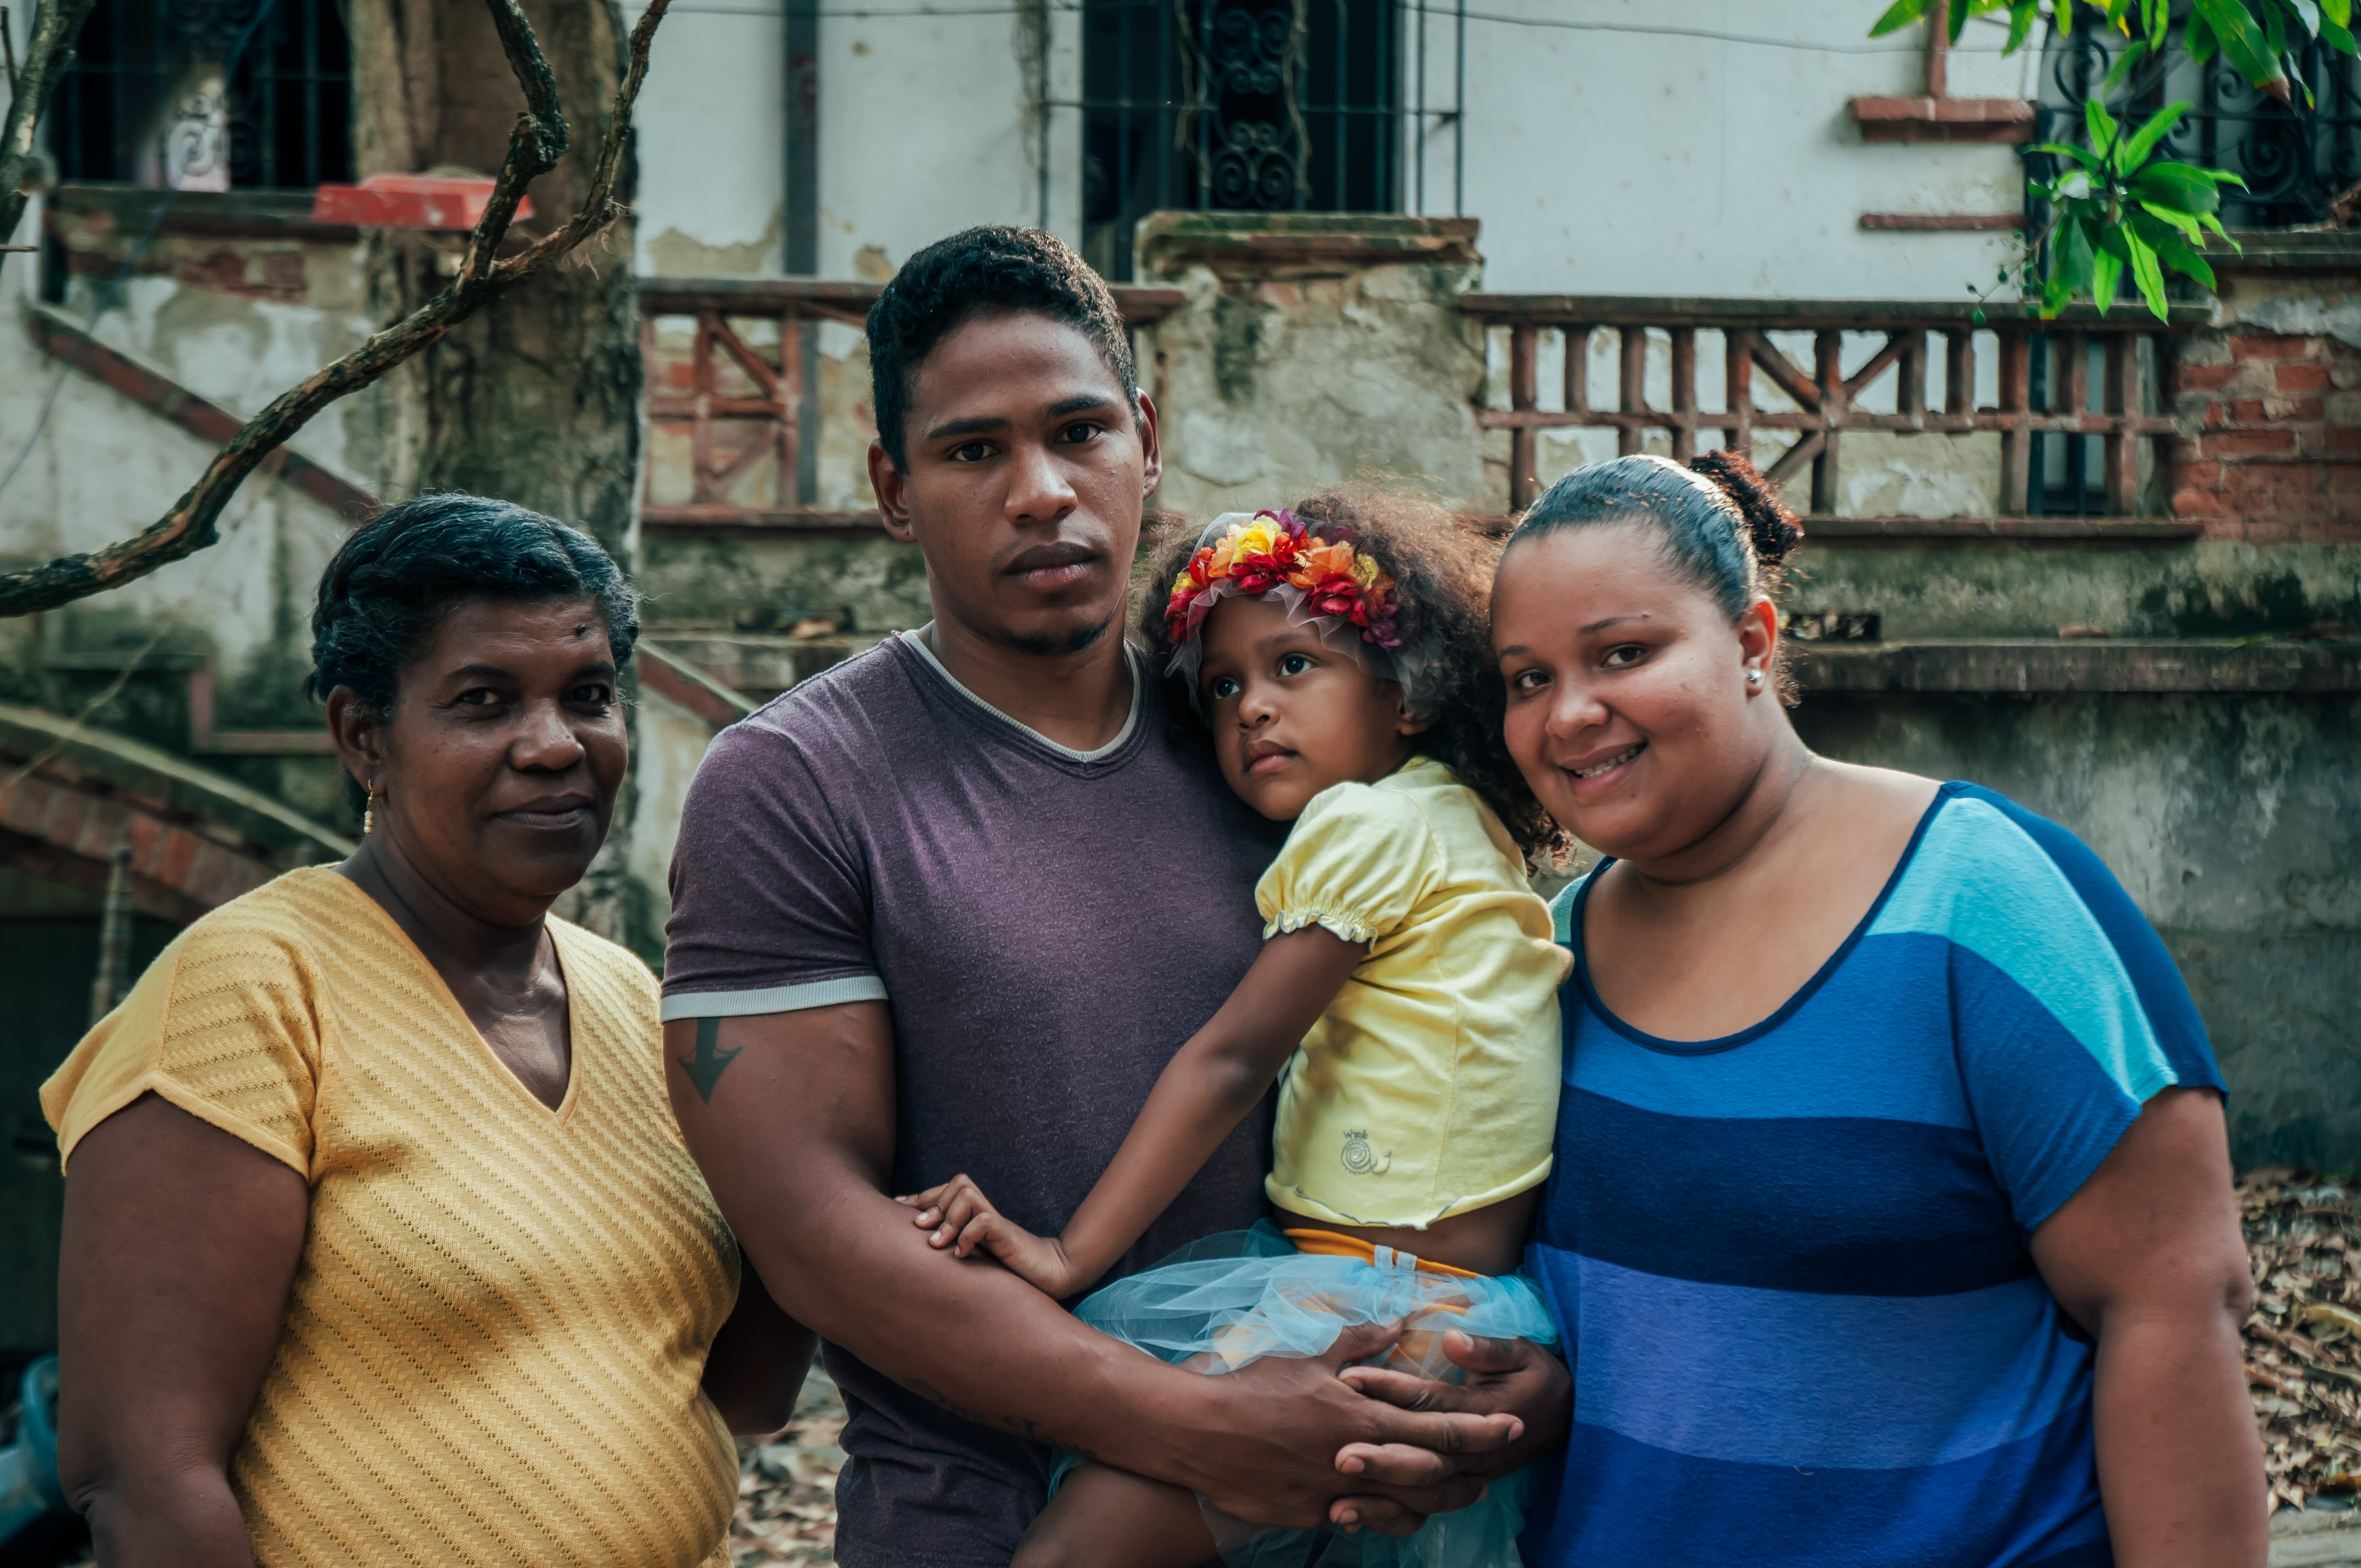 TRAILER: In This Venezuelan Drama, a Man Searches a Creepy Abandoned House For a Lost Treasure